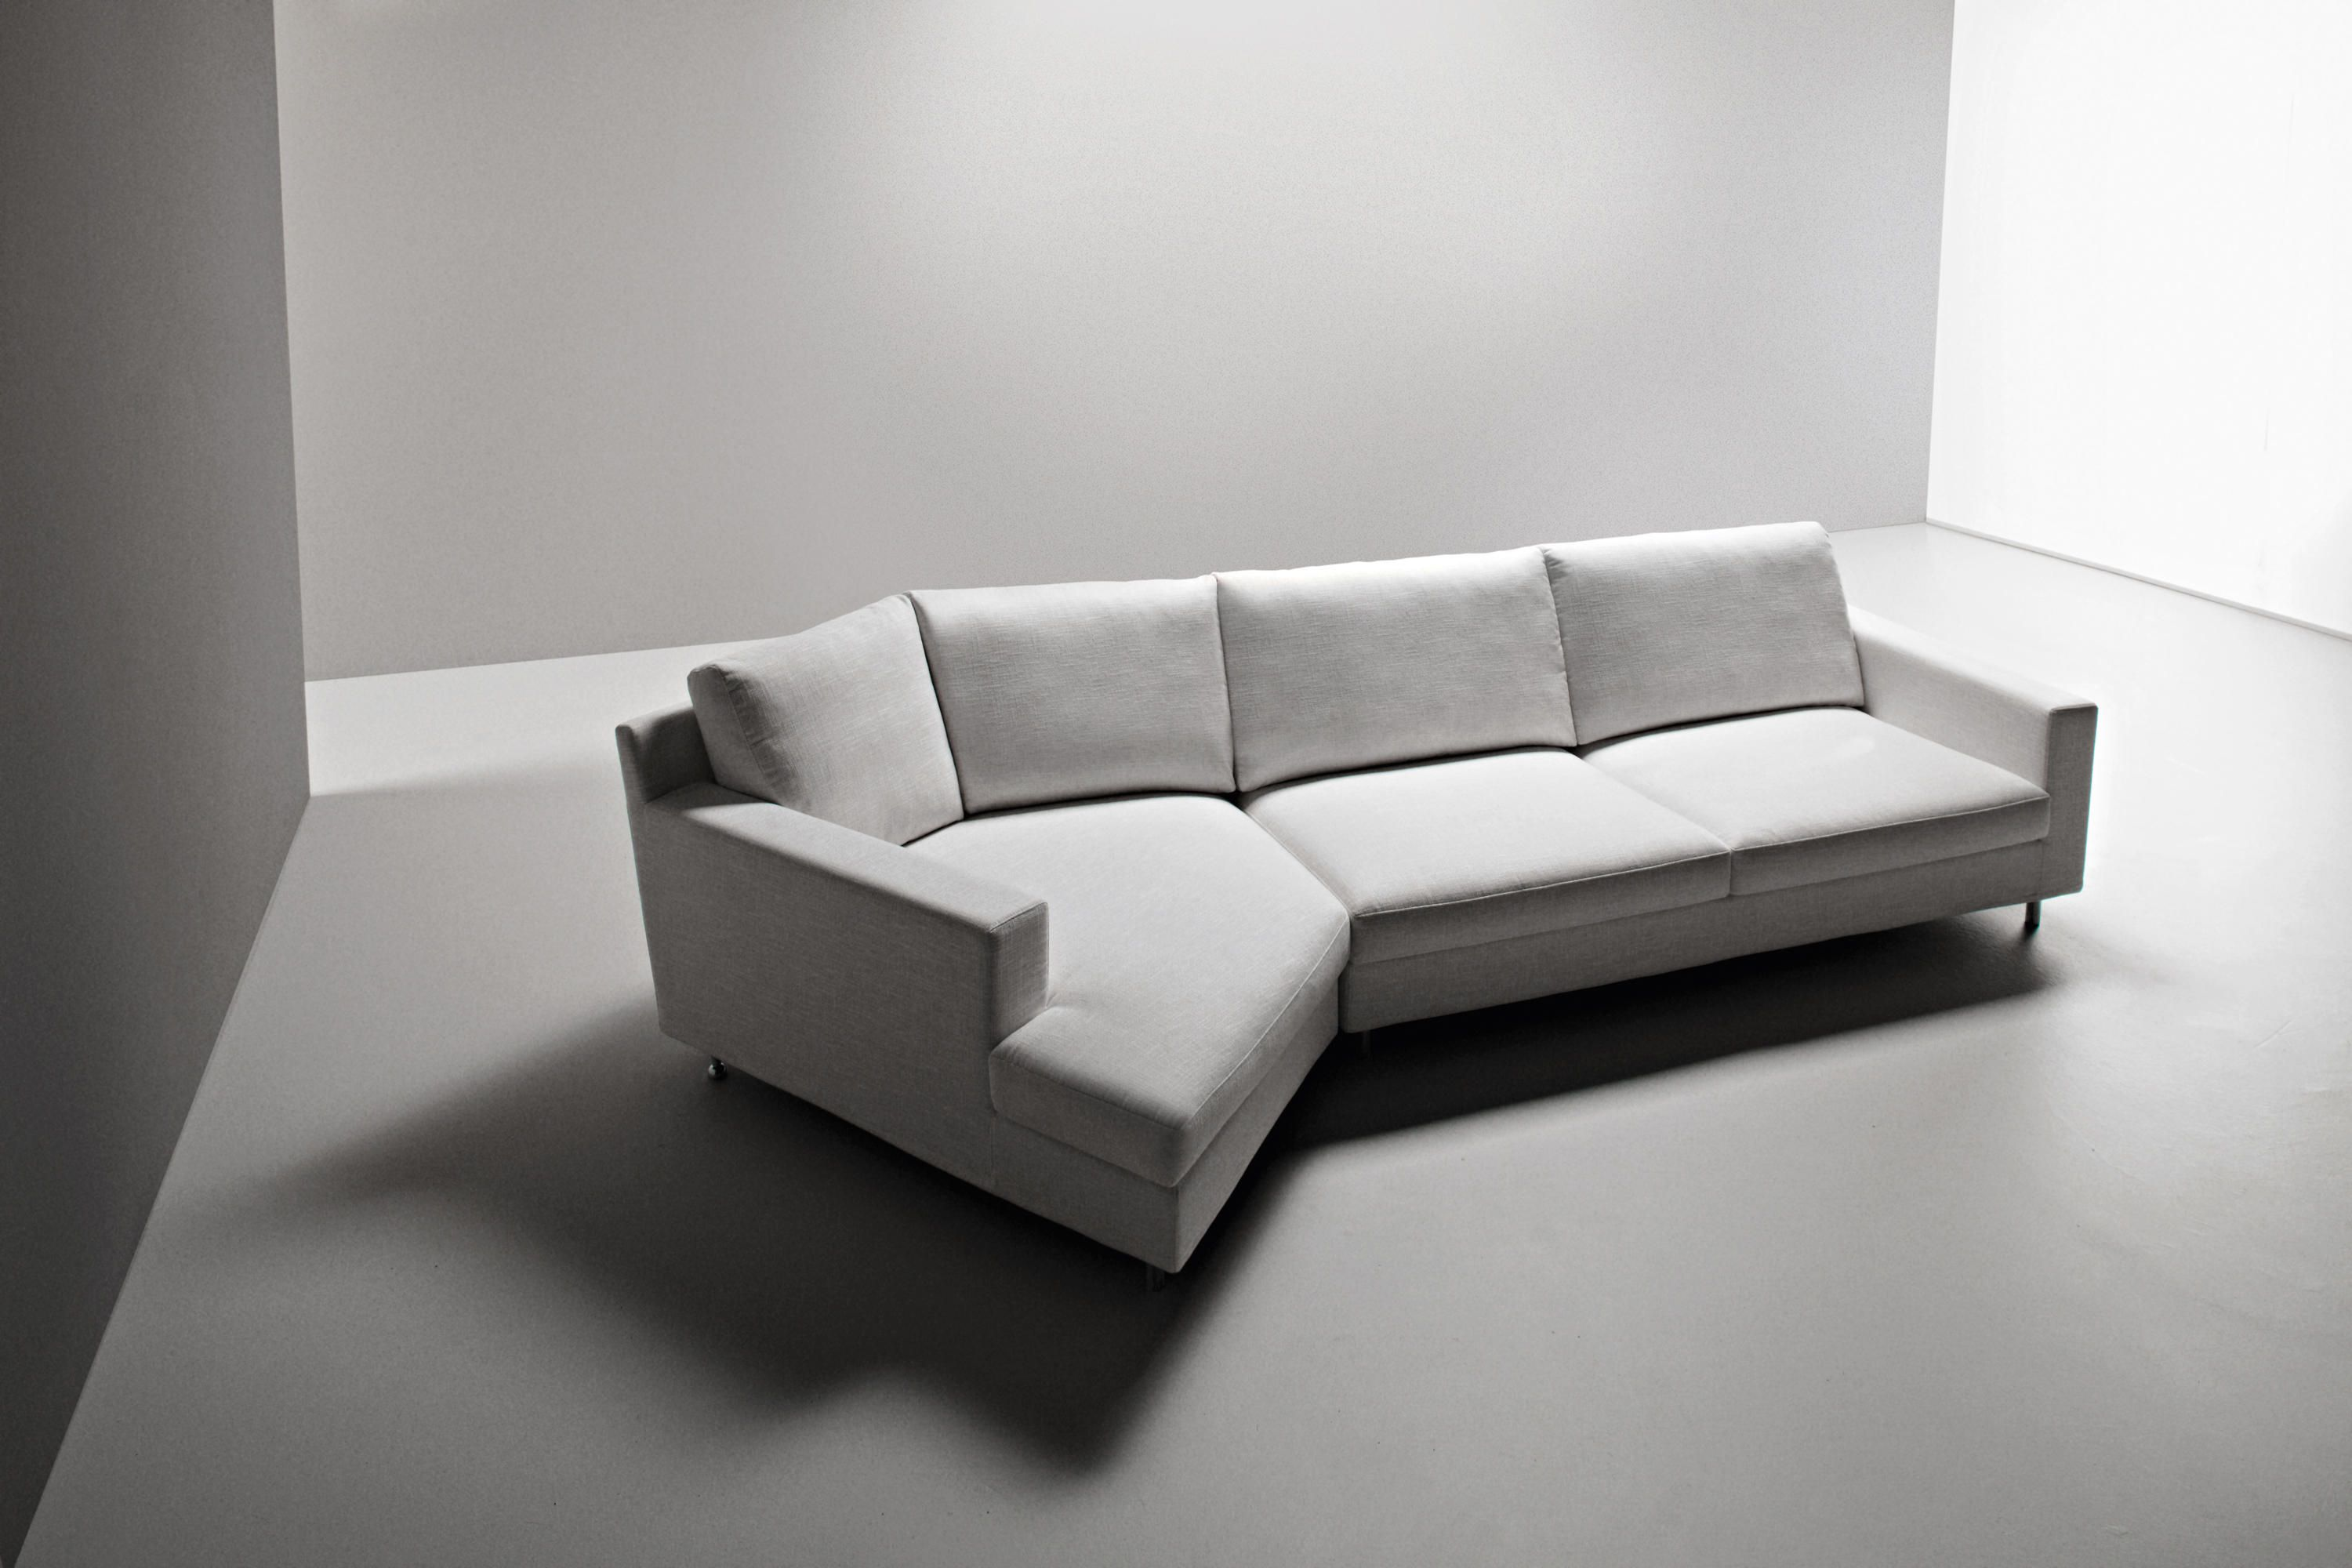 White Curved Sofa Modern Sectional White Leather Sofa Living